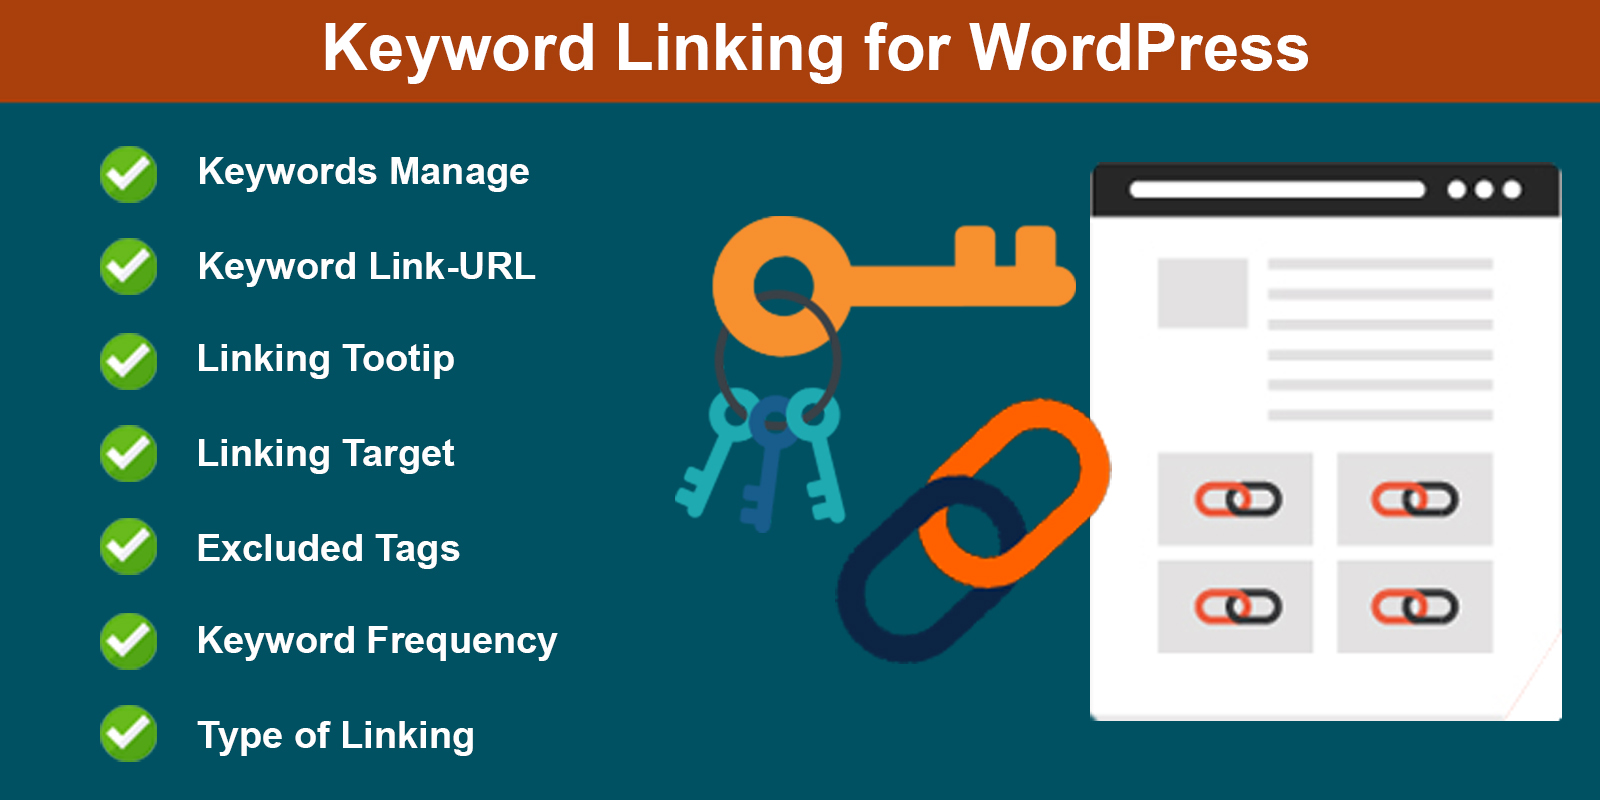 Wordpress Keyword Linking